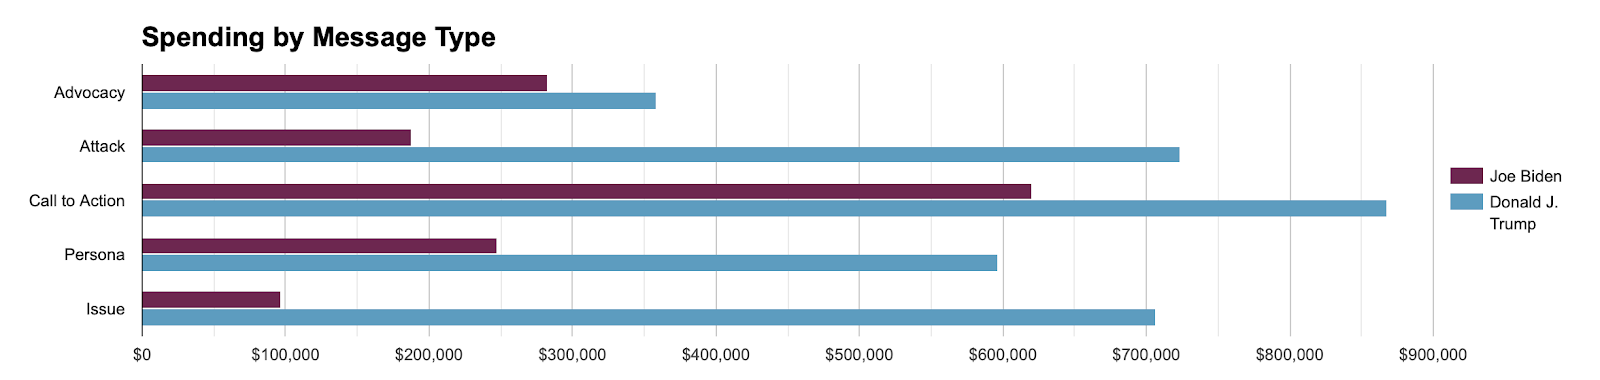 Biden and Trump total spending by message type within Nevada from 6/1-11/18. Trump and Biden both spend the message on call to action.